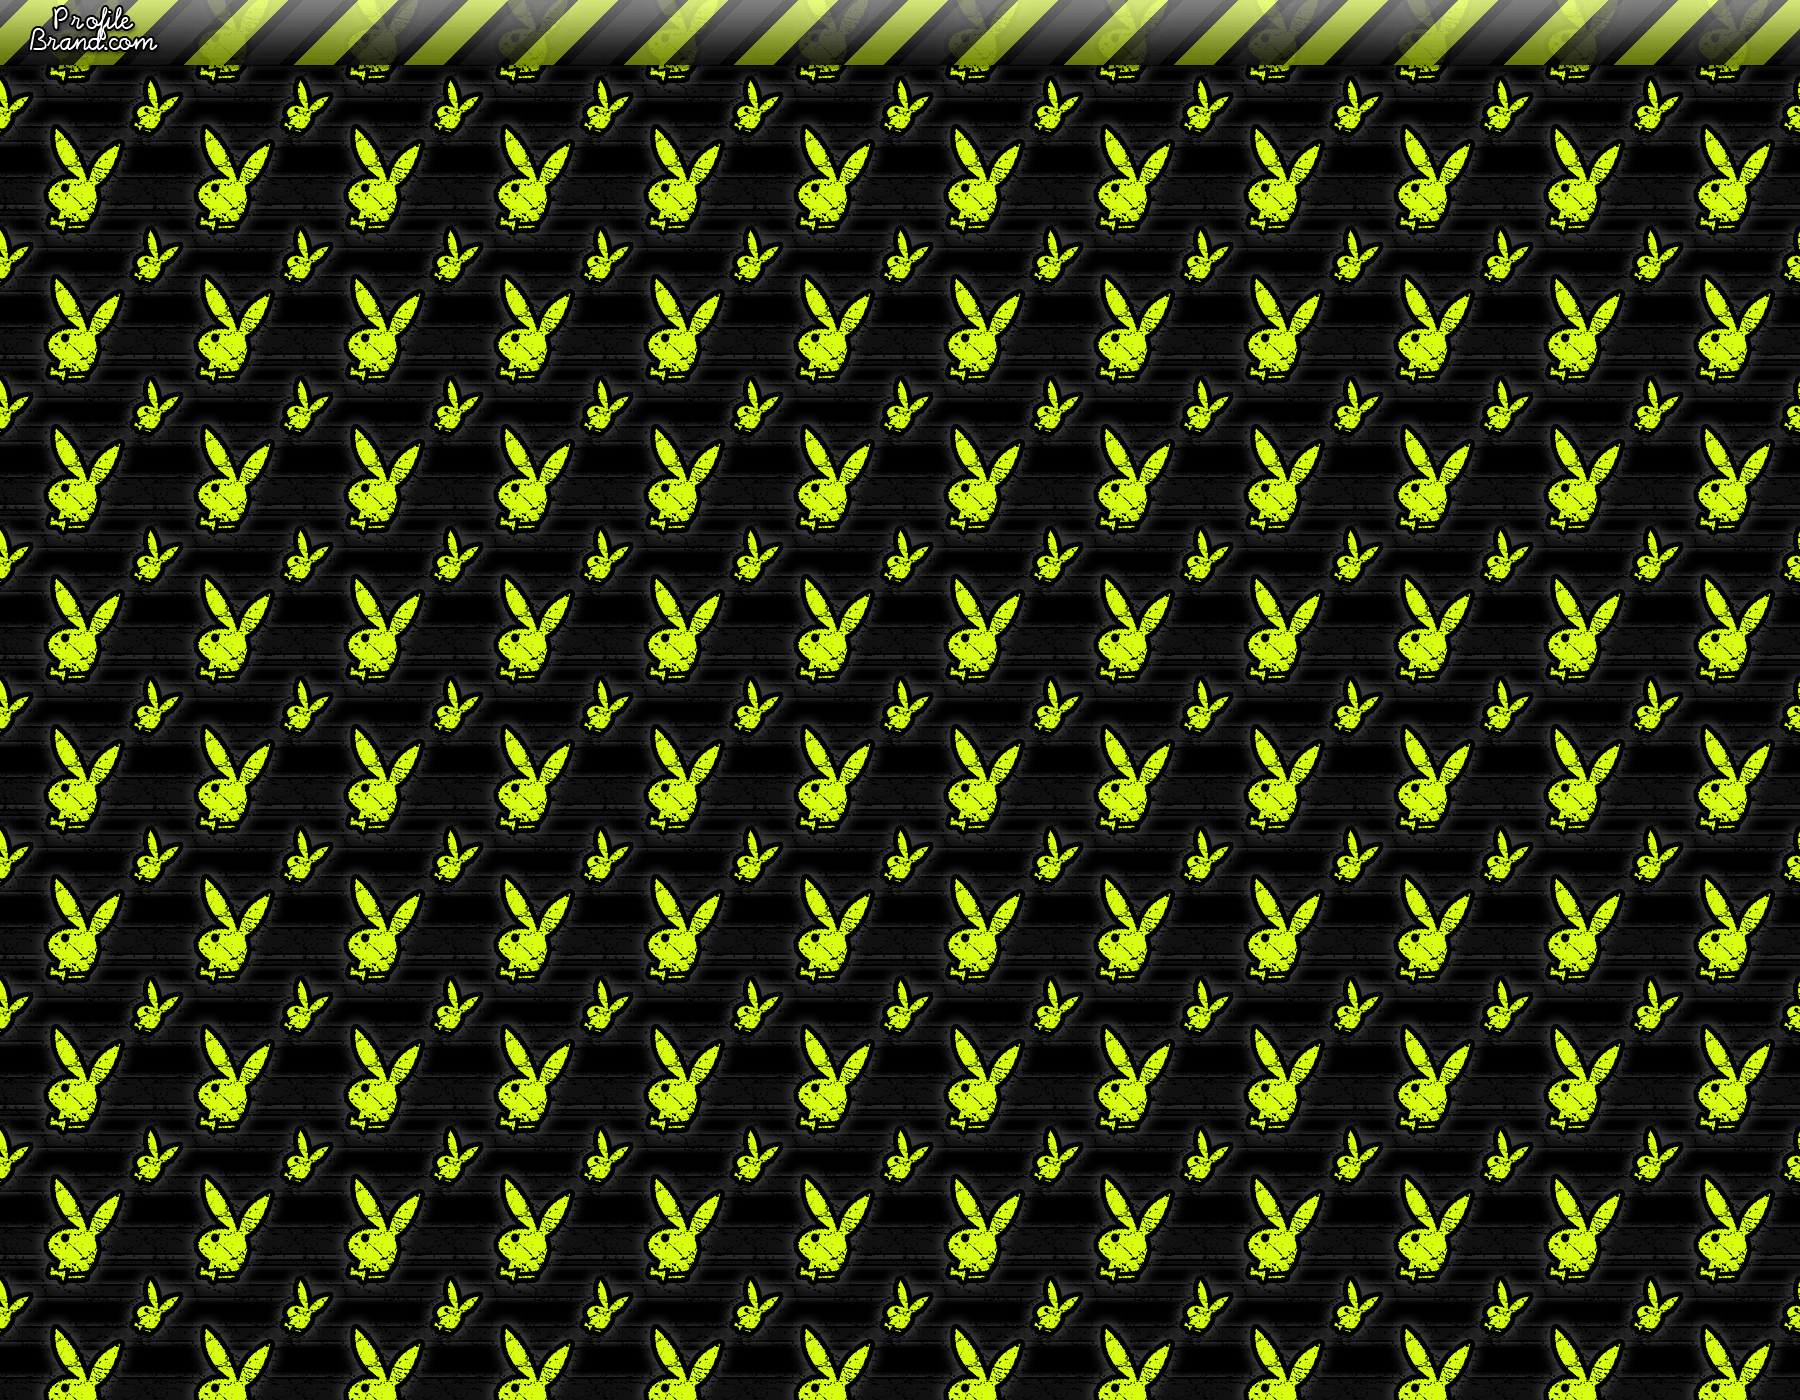 Playboy bunny logo wallpapers wallpaper cave free playboy bunny wallpapers wallpaperpulse voltagebd Image collections